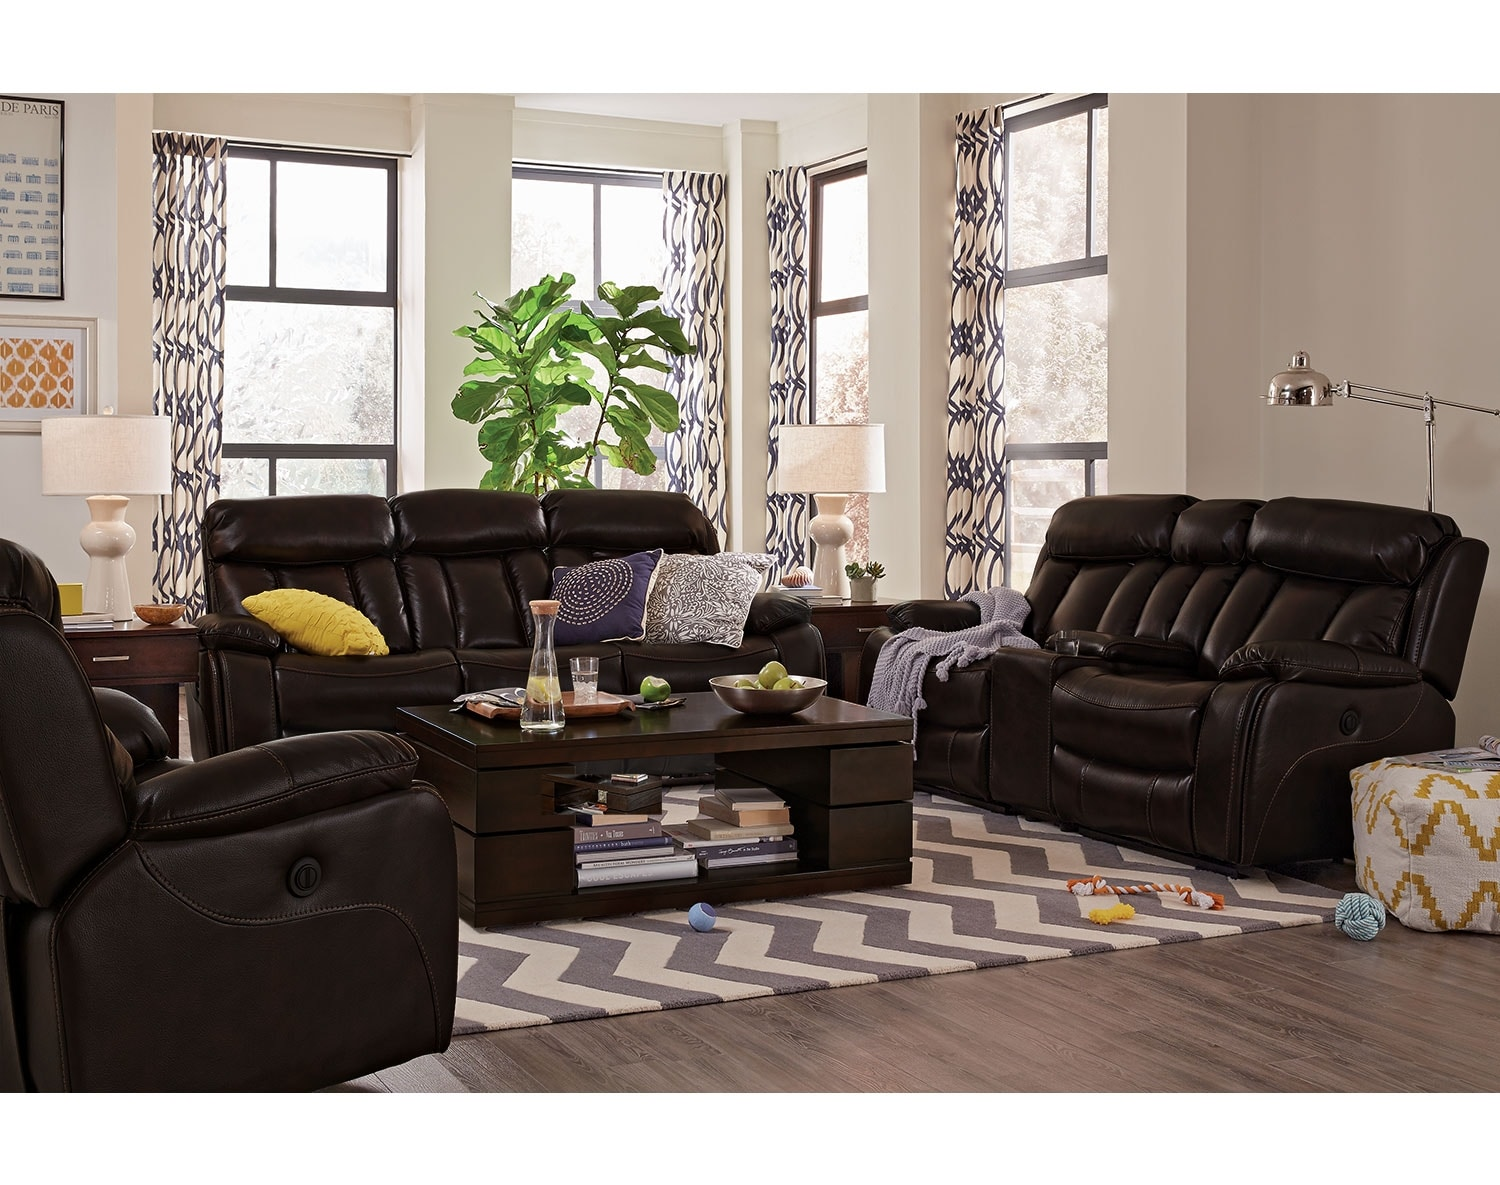 Value City Furniture Living Room The Diablo Collection Walnut Value City Furniture